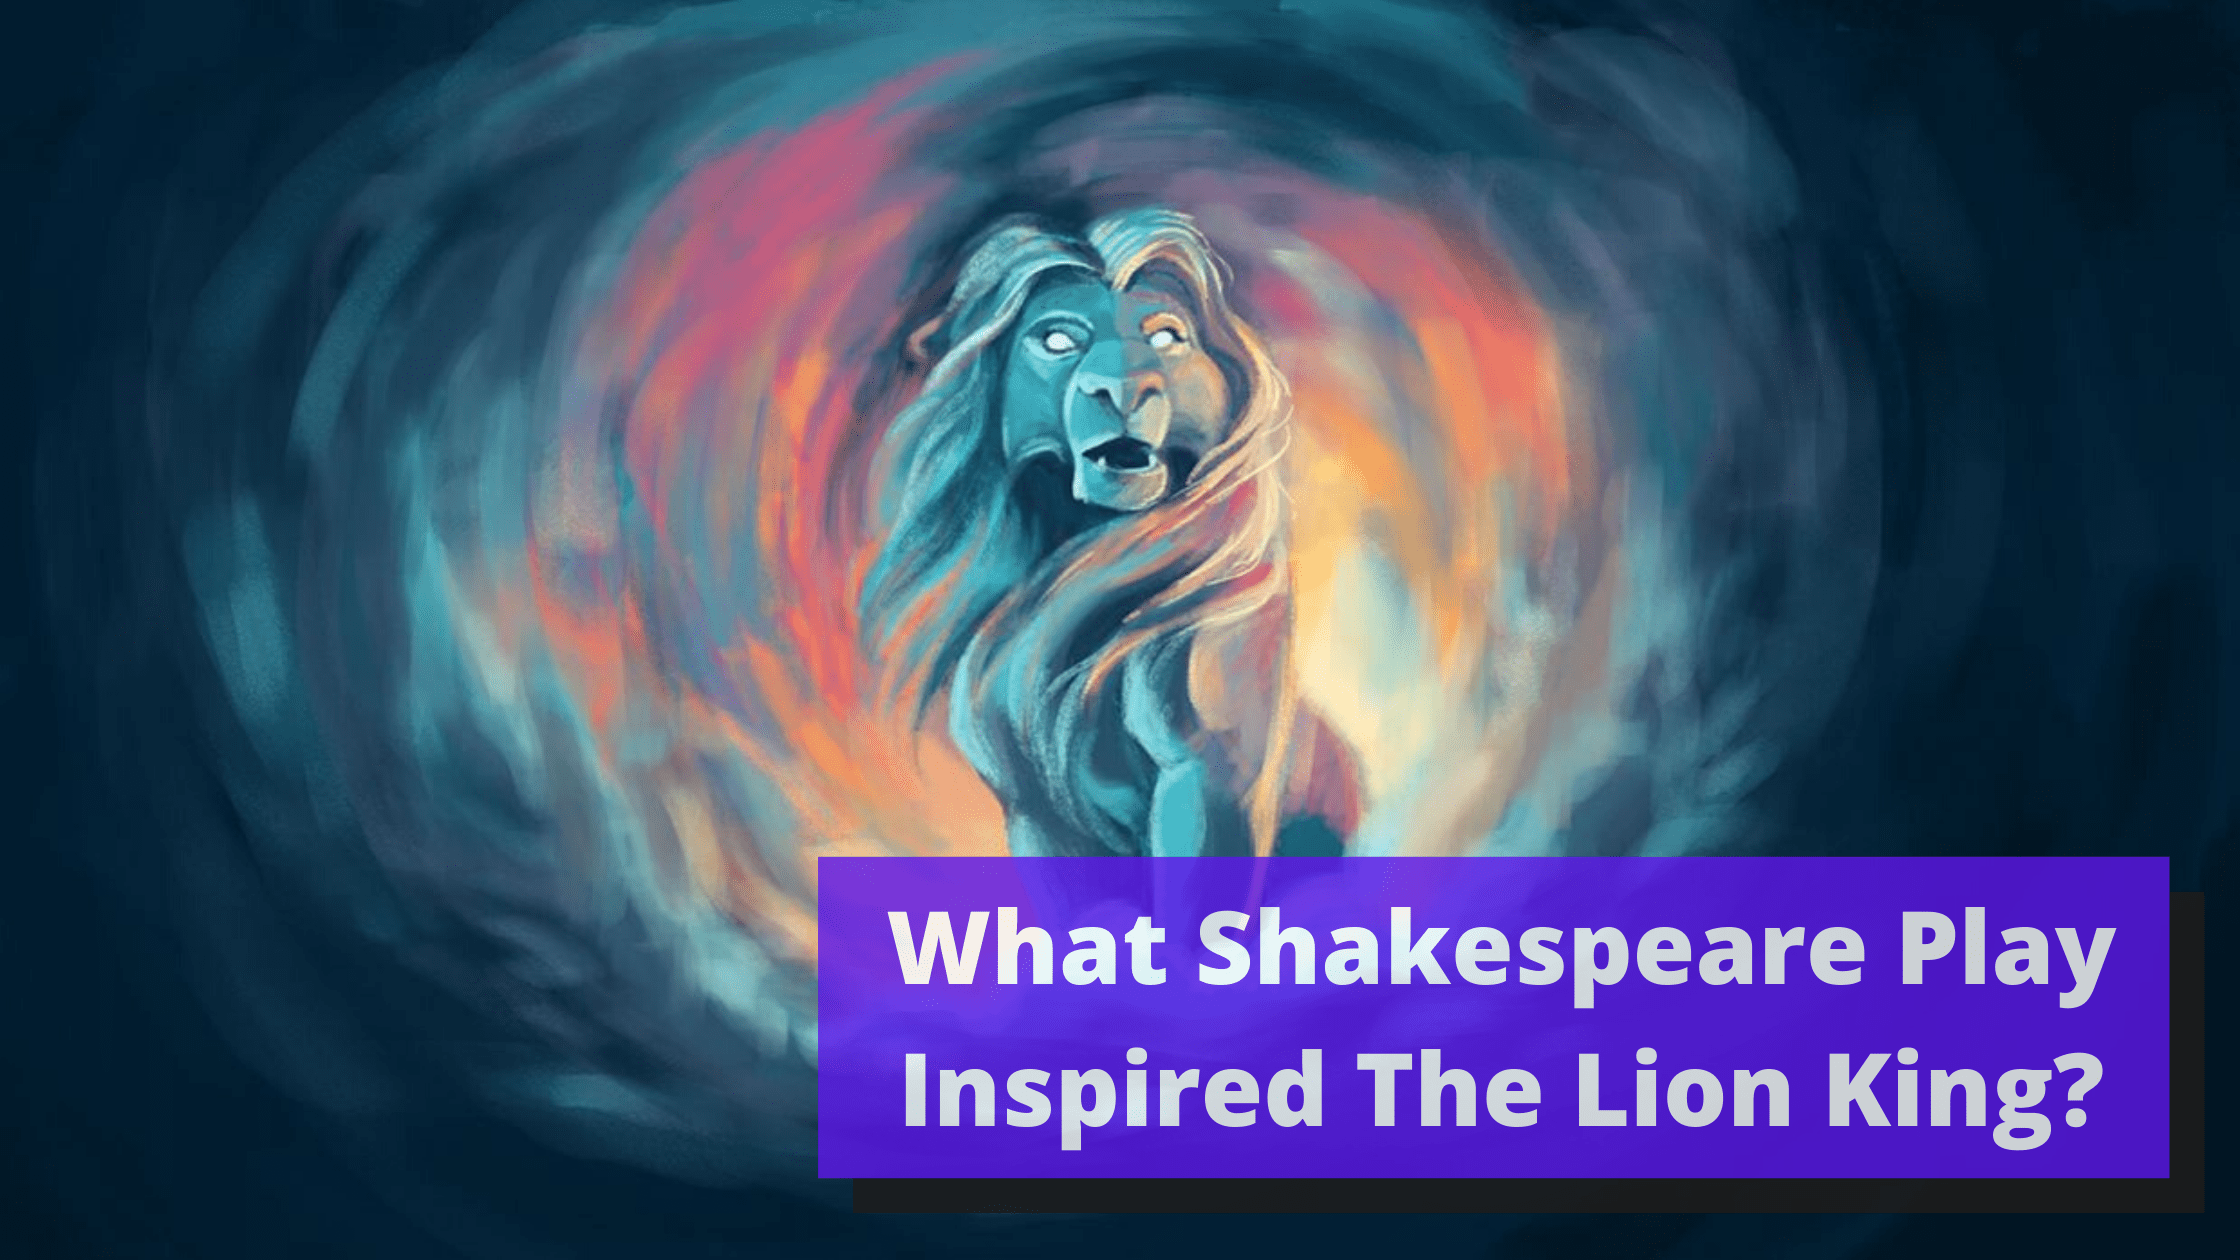 What Shakespeare Play Inspired the Movie The Lion King?